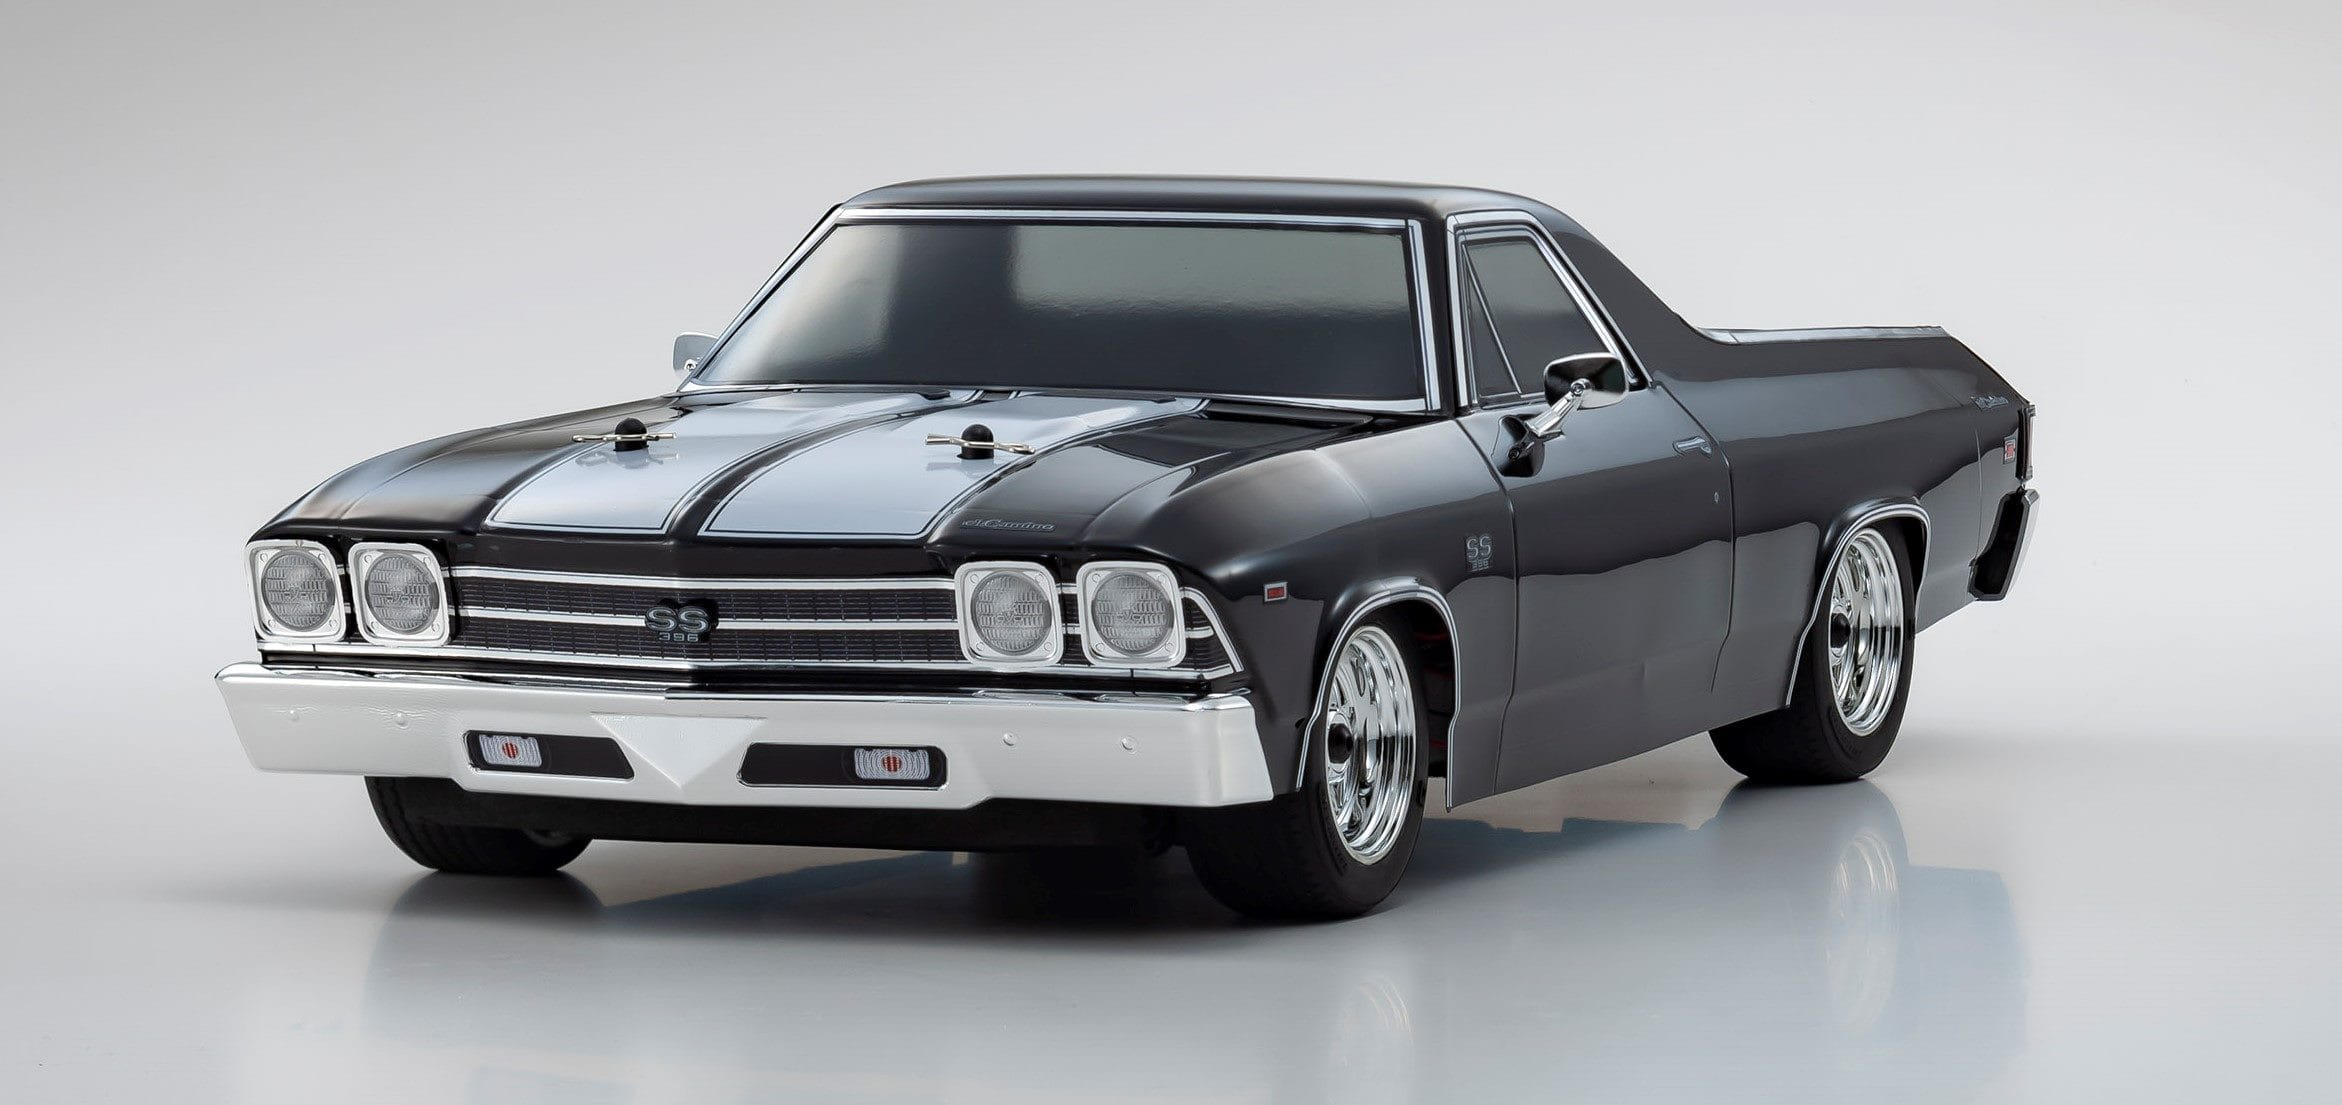 An Old-school Beauty: Kyosho's Fazer MK2 1969 El Camino